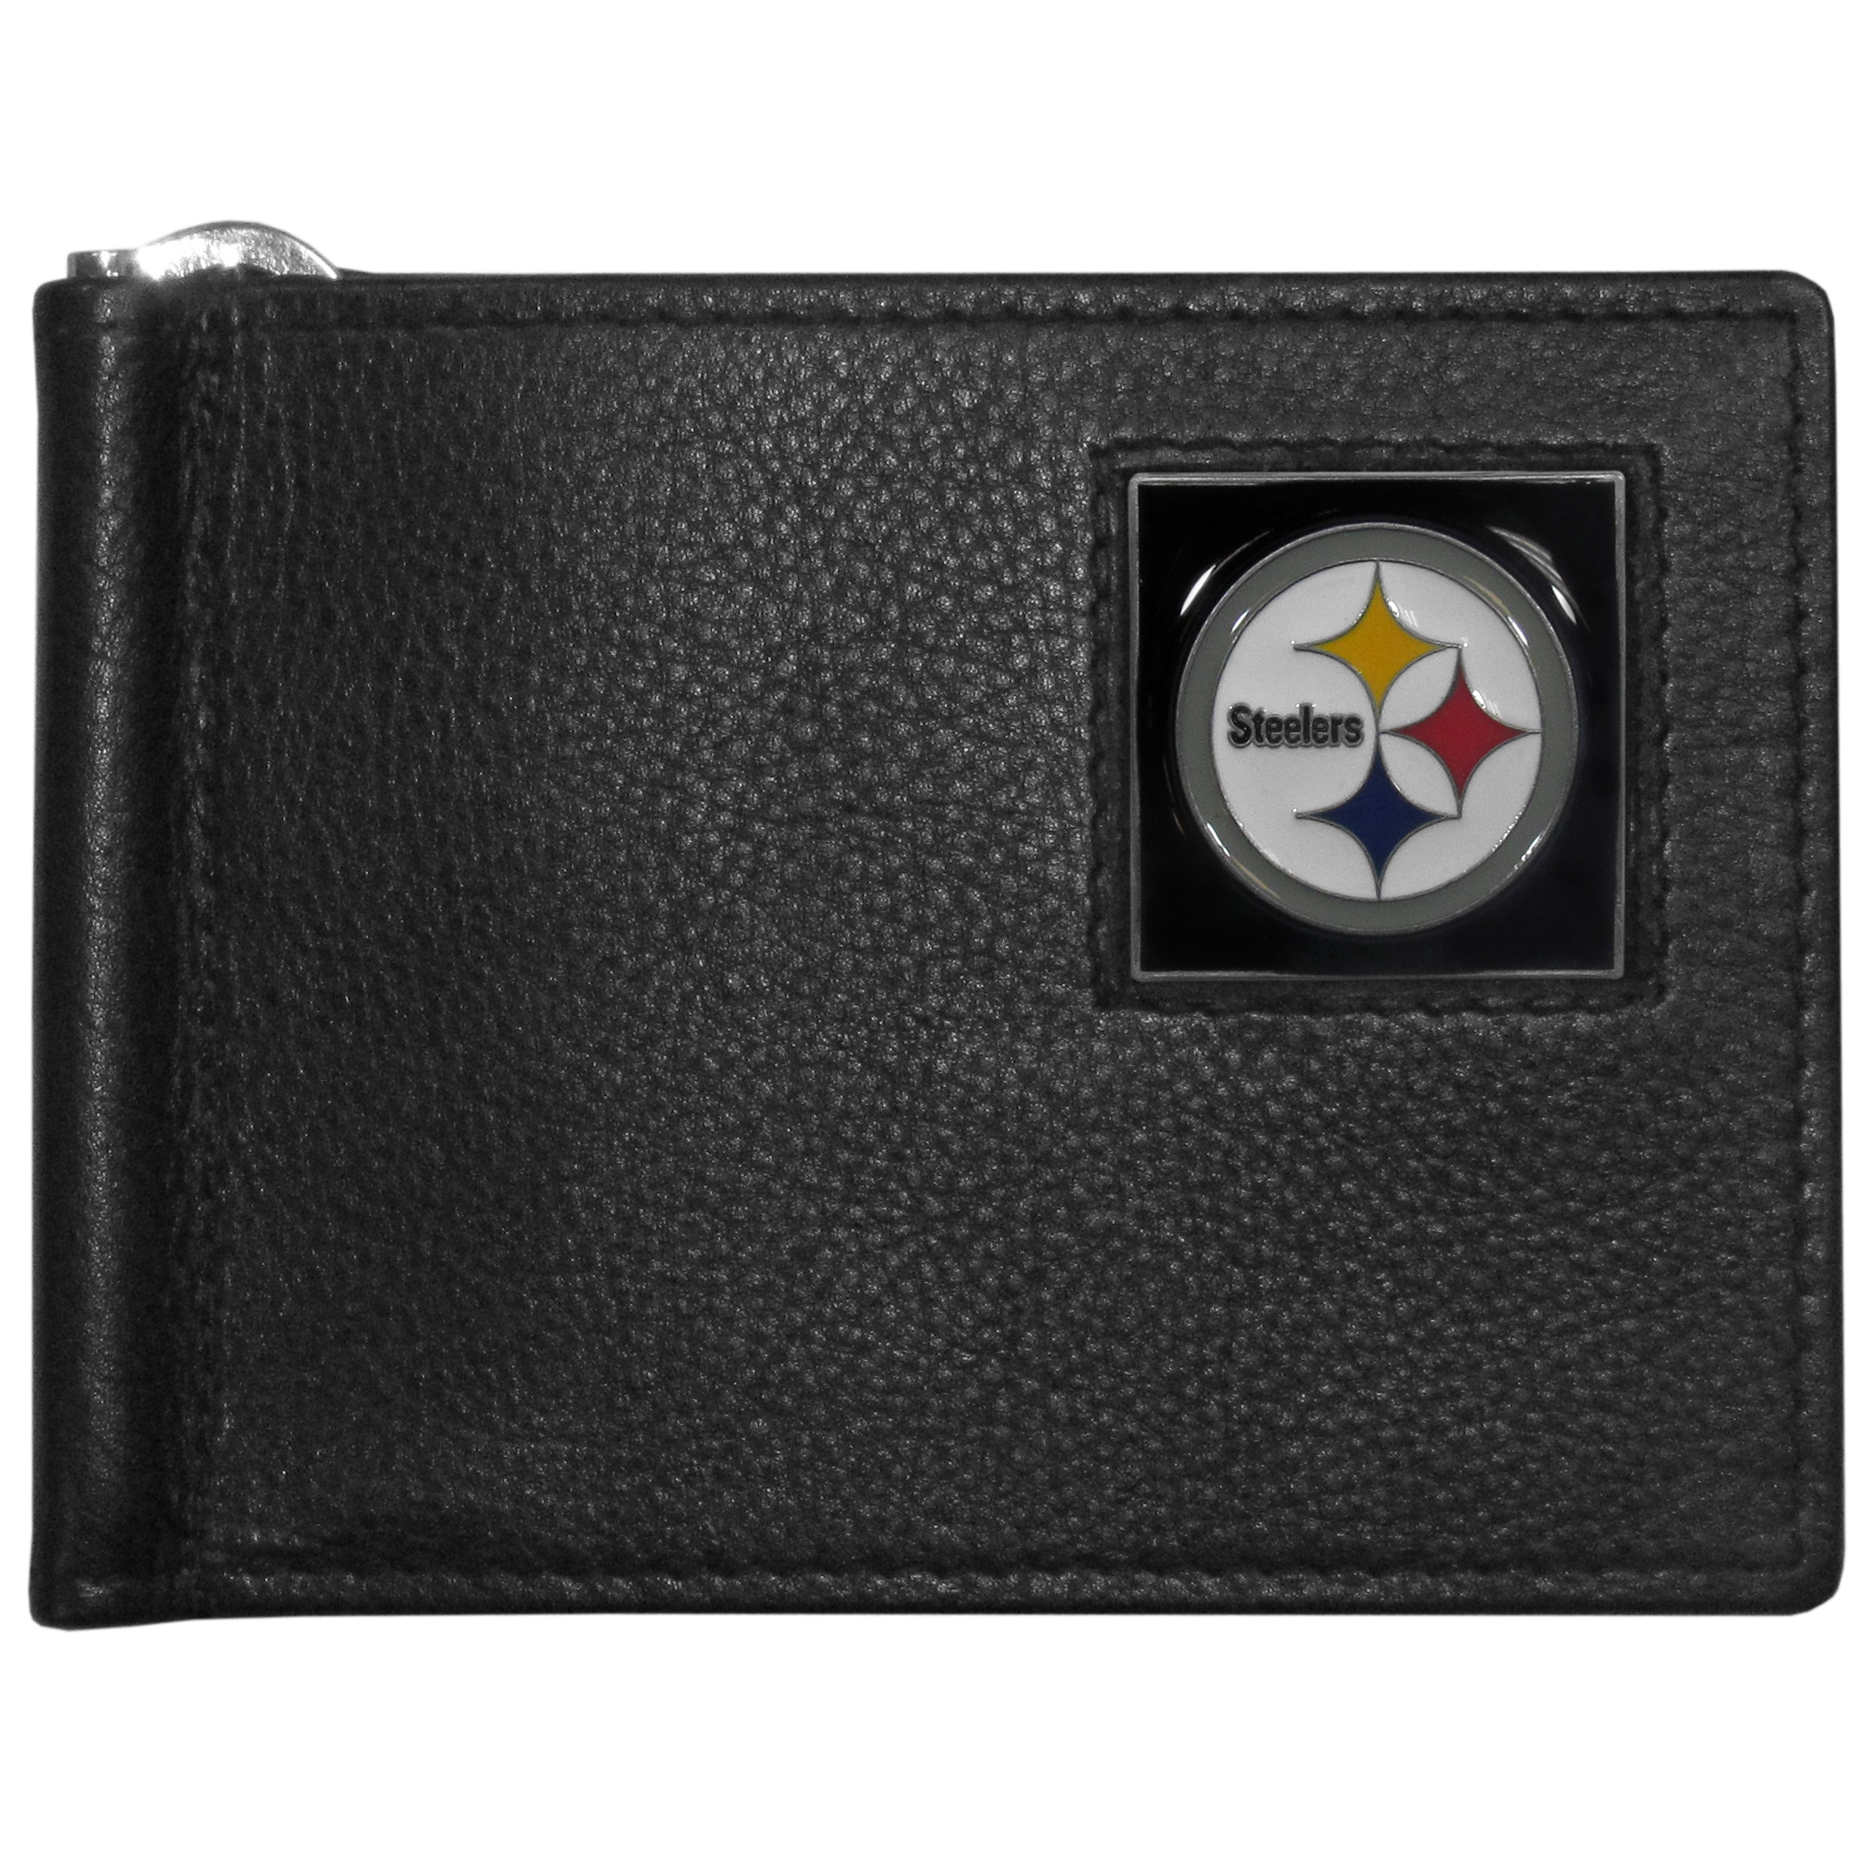 Pittsburgh Steelers Leather Bill Clip Wallet - This cool new style wallet features an inner, metal bill clip that lips up for easy access. The super slim wallet holds tons of stuff with ample pockets, credit card slots & windowed ID slot.  The wallet is made of genuine fine grain leather and it finished with a metal Pittsburgh Steelers emblem. The wallet is shipped in gift box packaging.